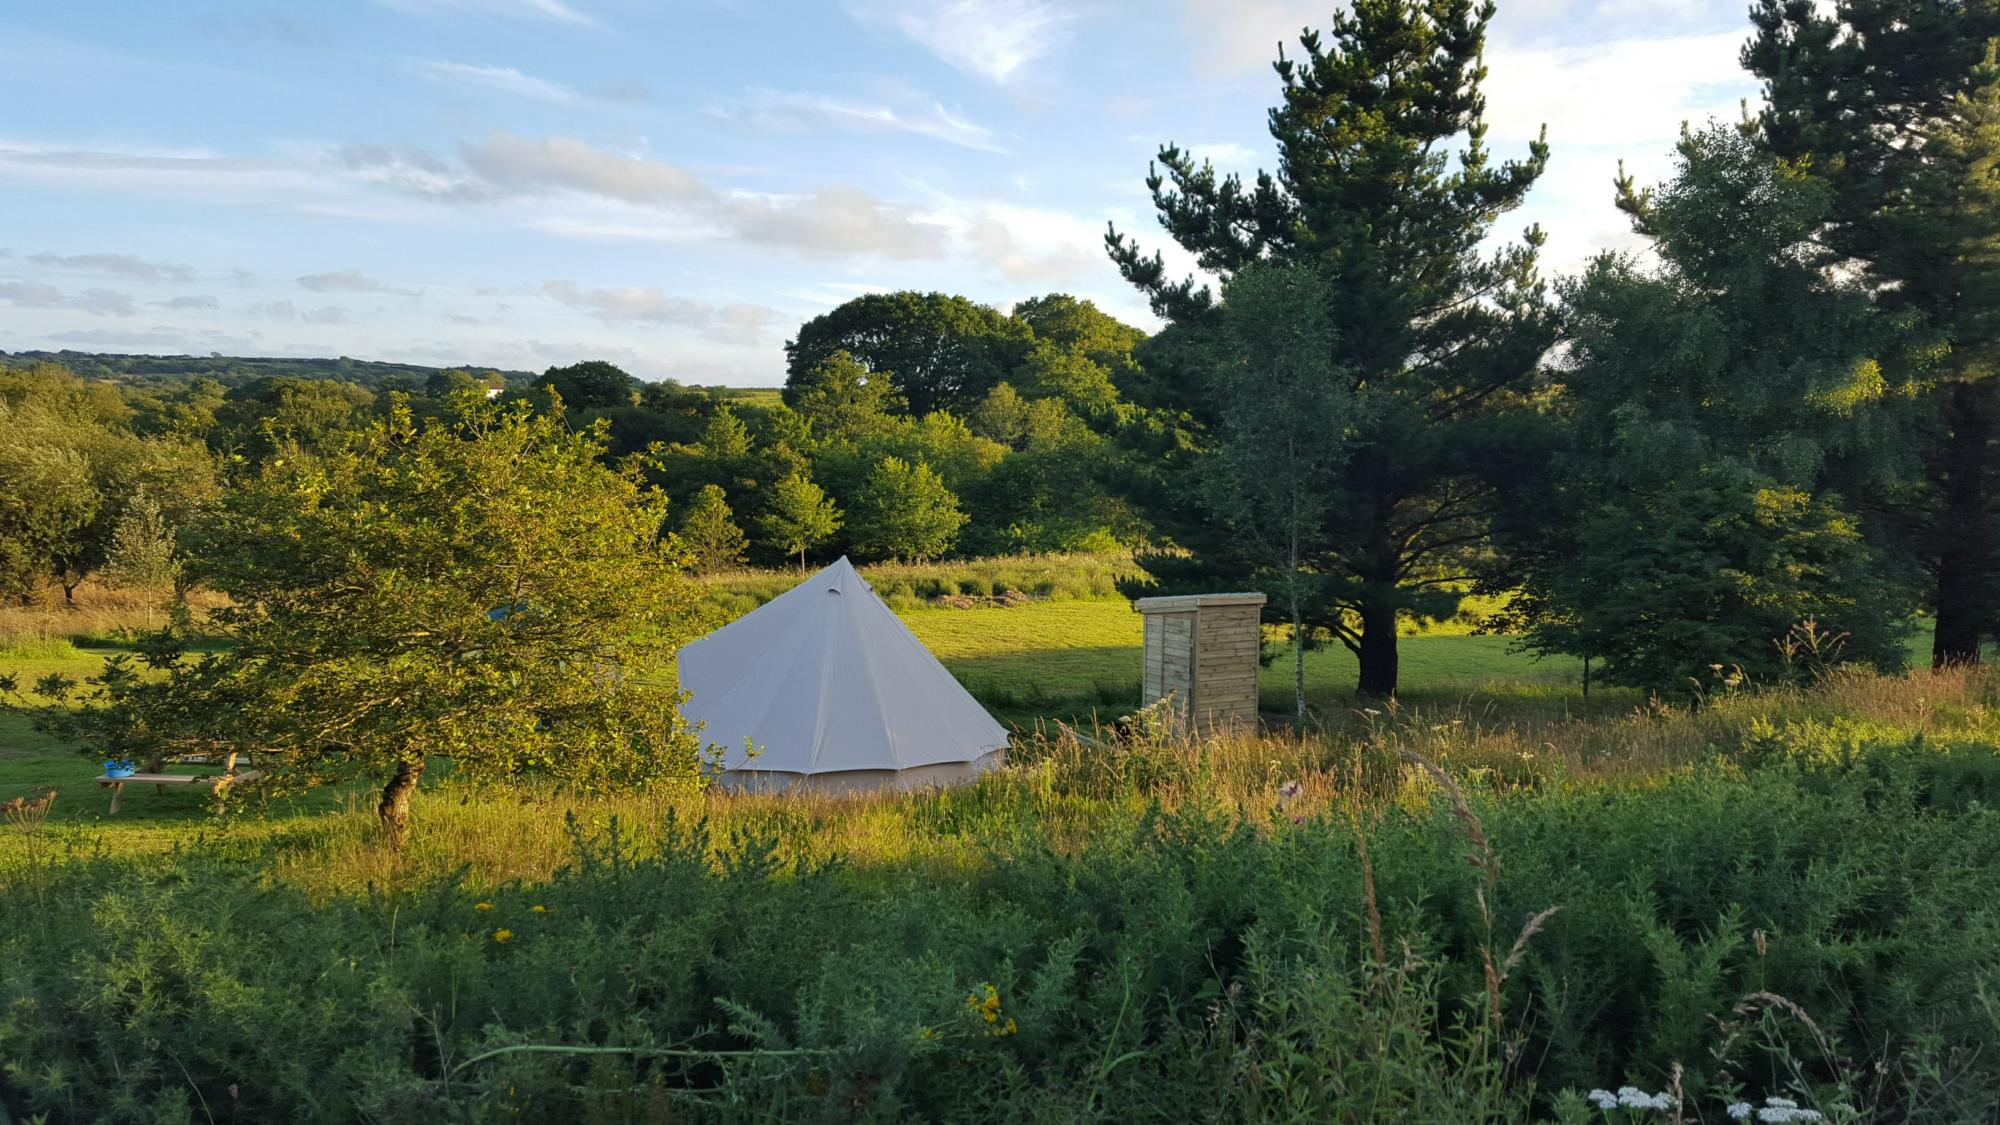 Glamping in Pembrokeshire – I Love This Campsite